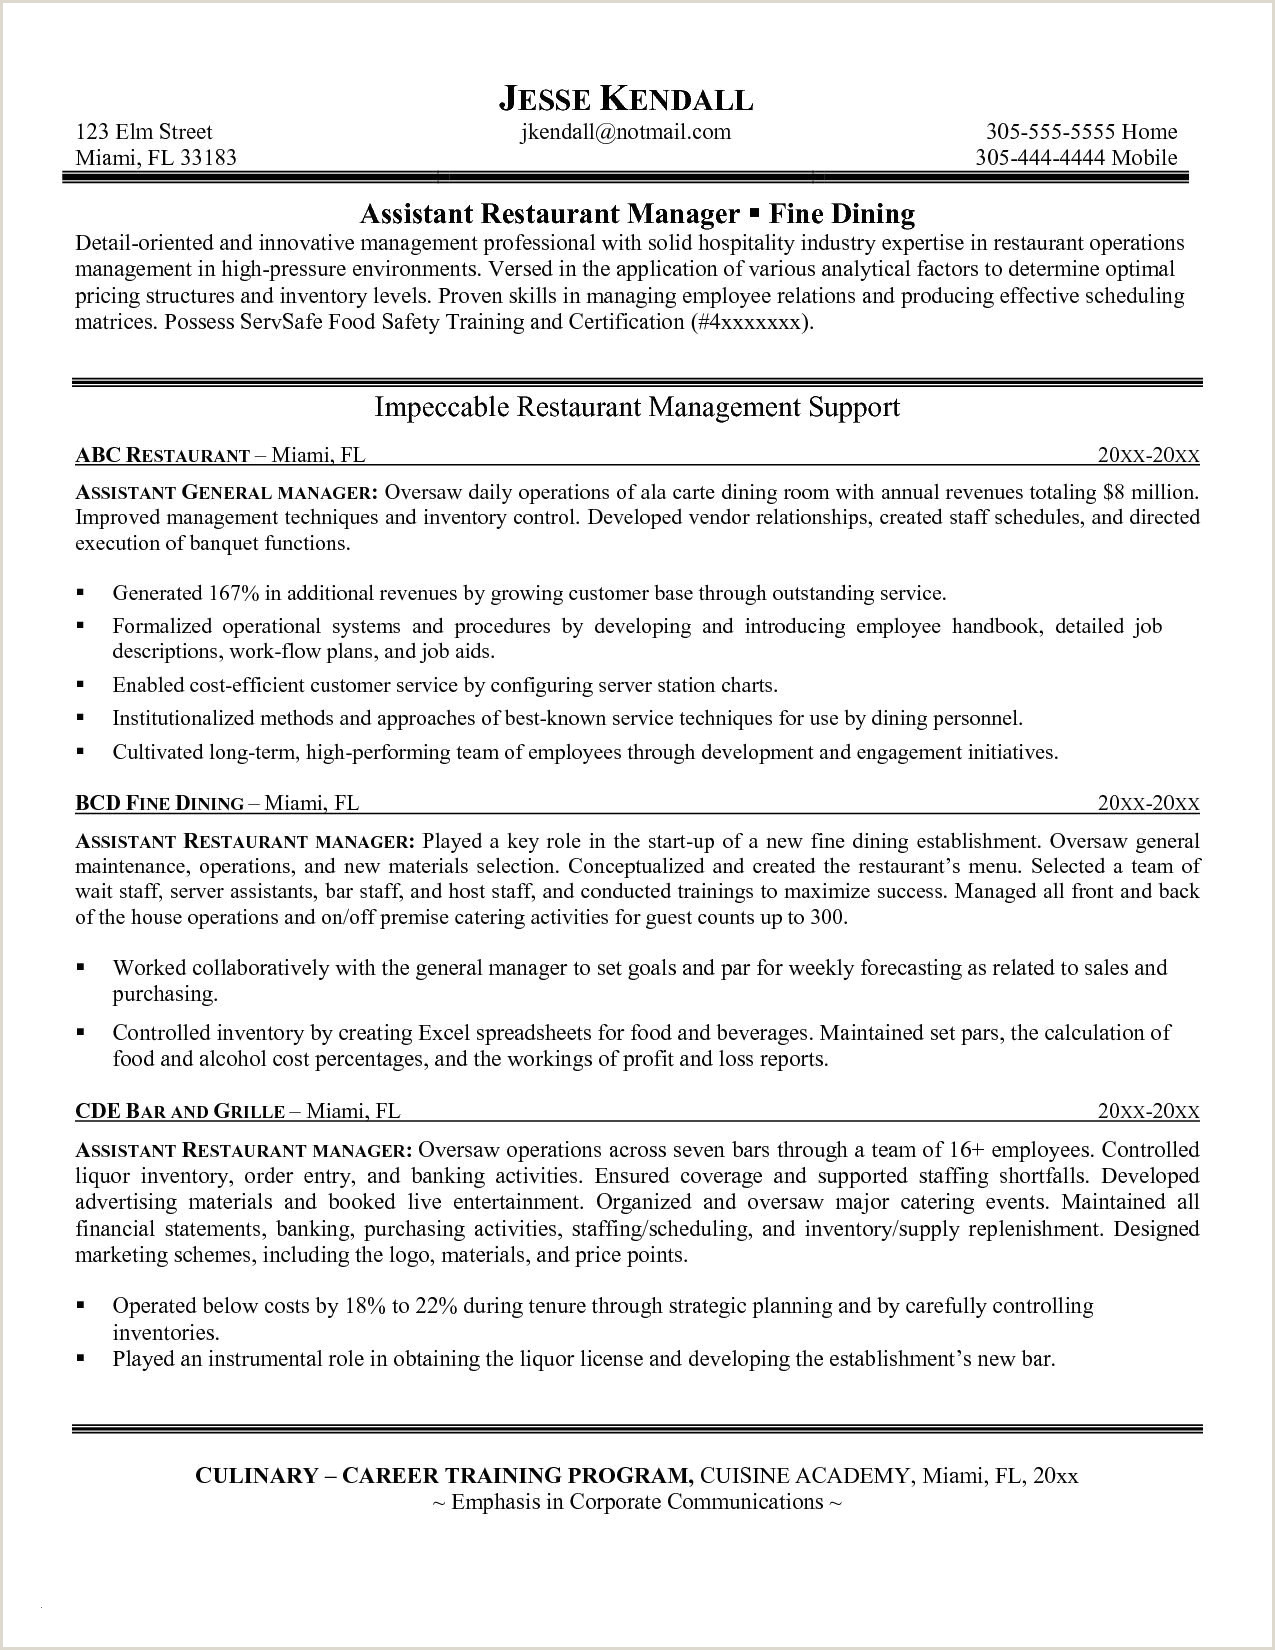 Food Service Manager Resume Radio Traffic Manager Resume – Salumguilher